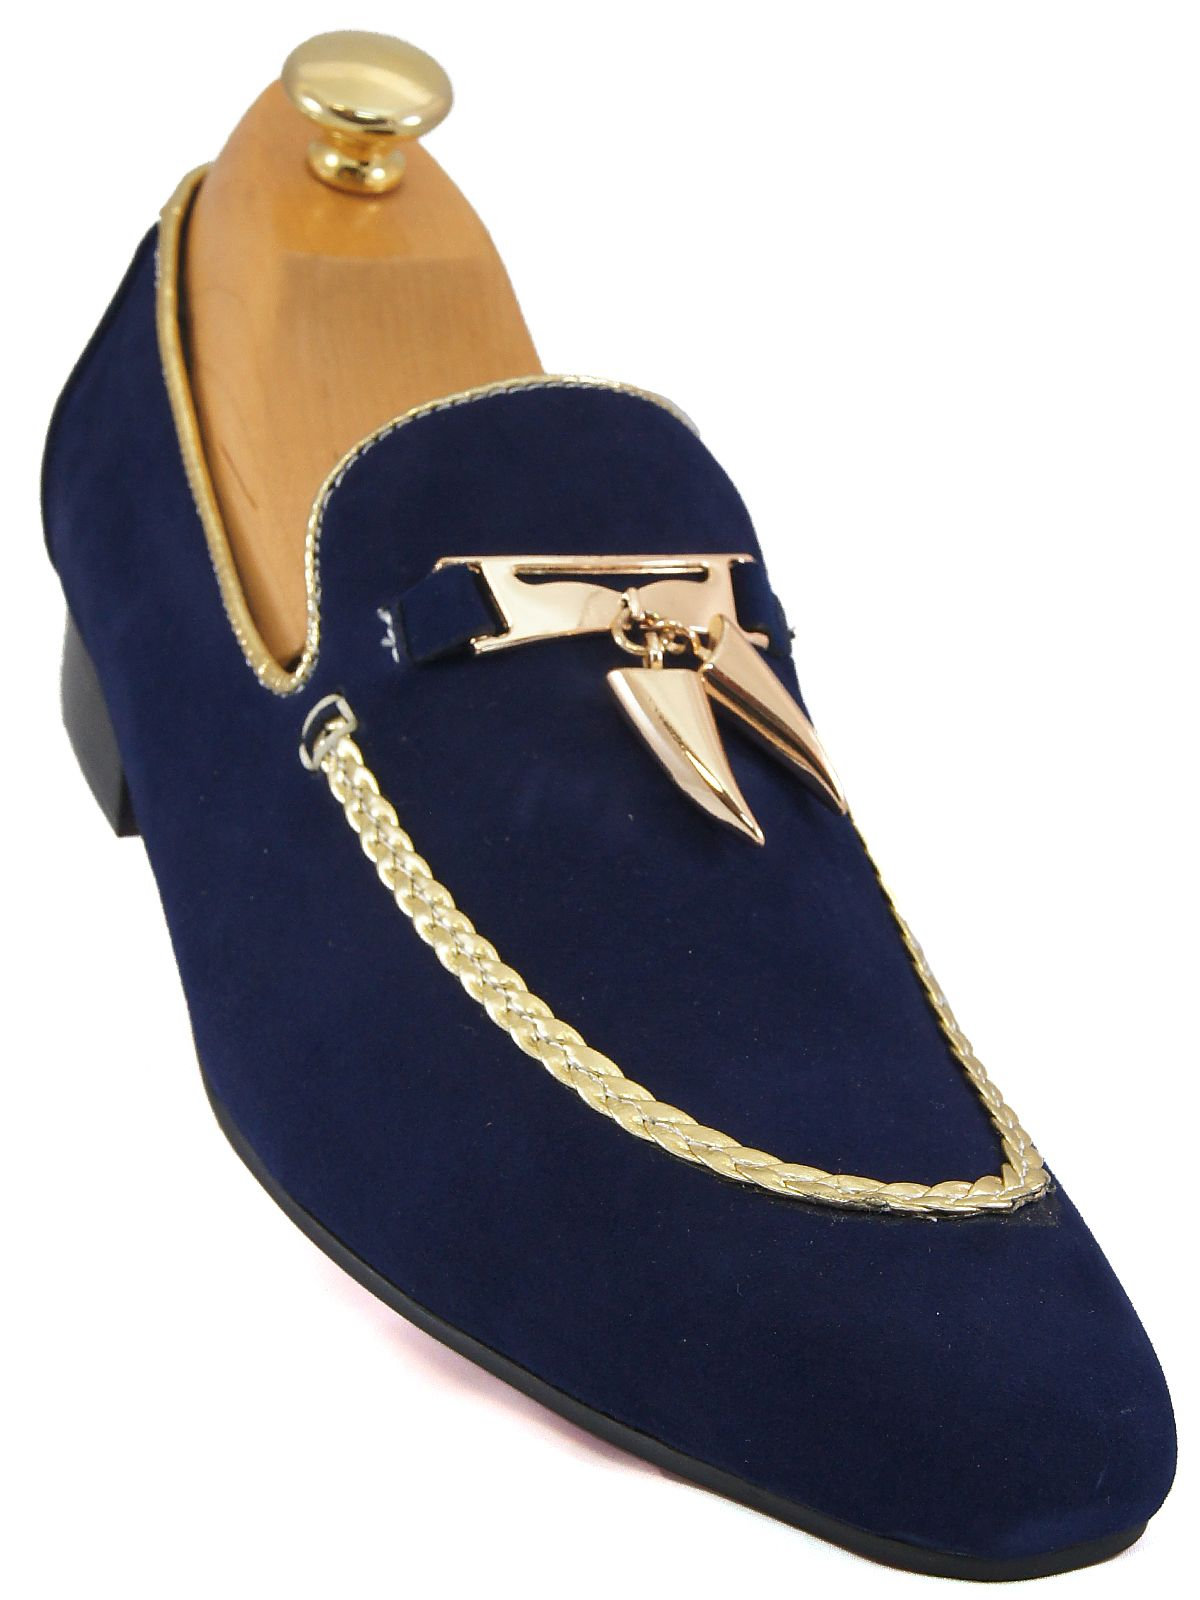 ec98069fee9 Switch out your basic loafers and add a pop of color with these. This style